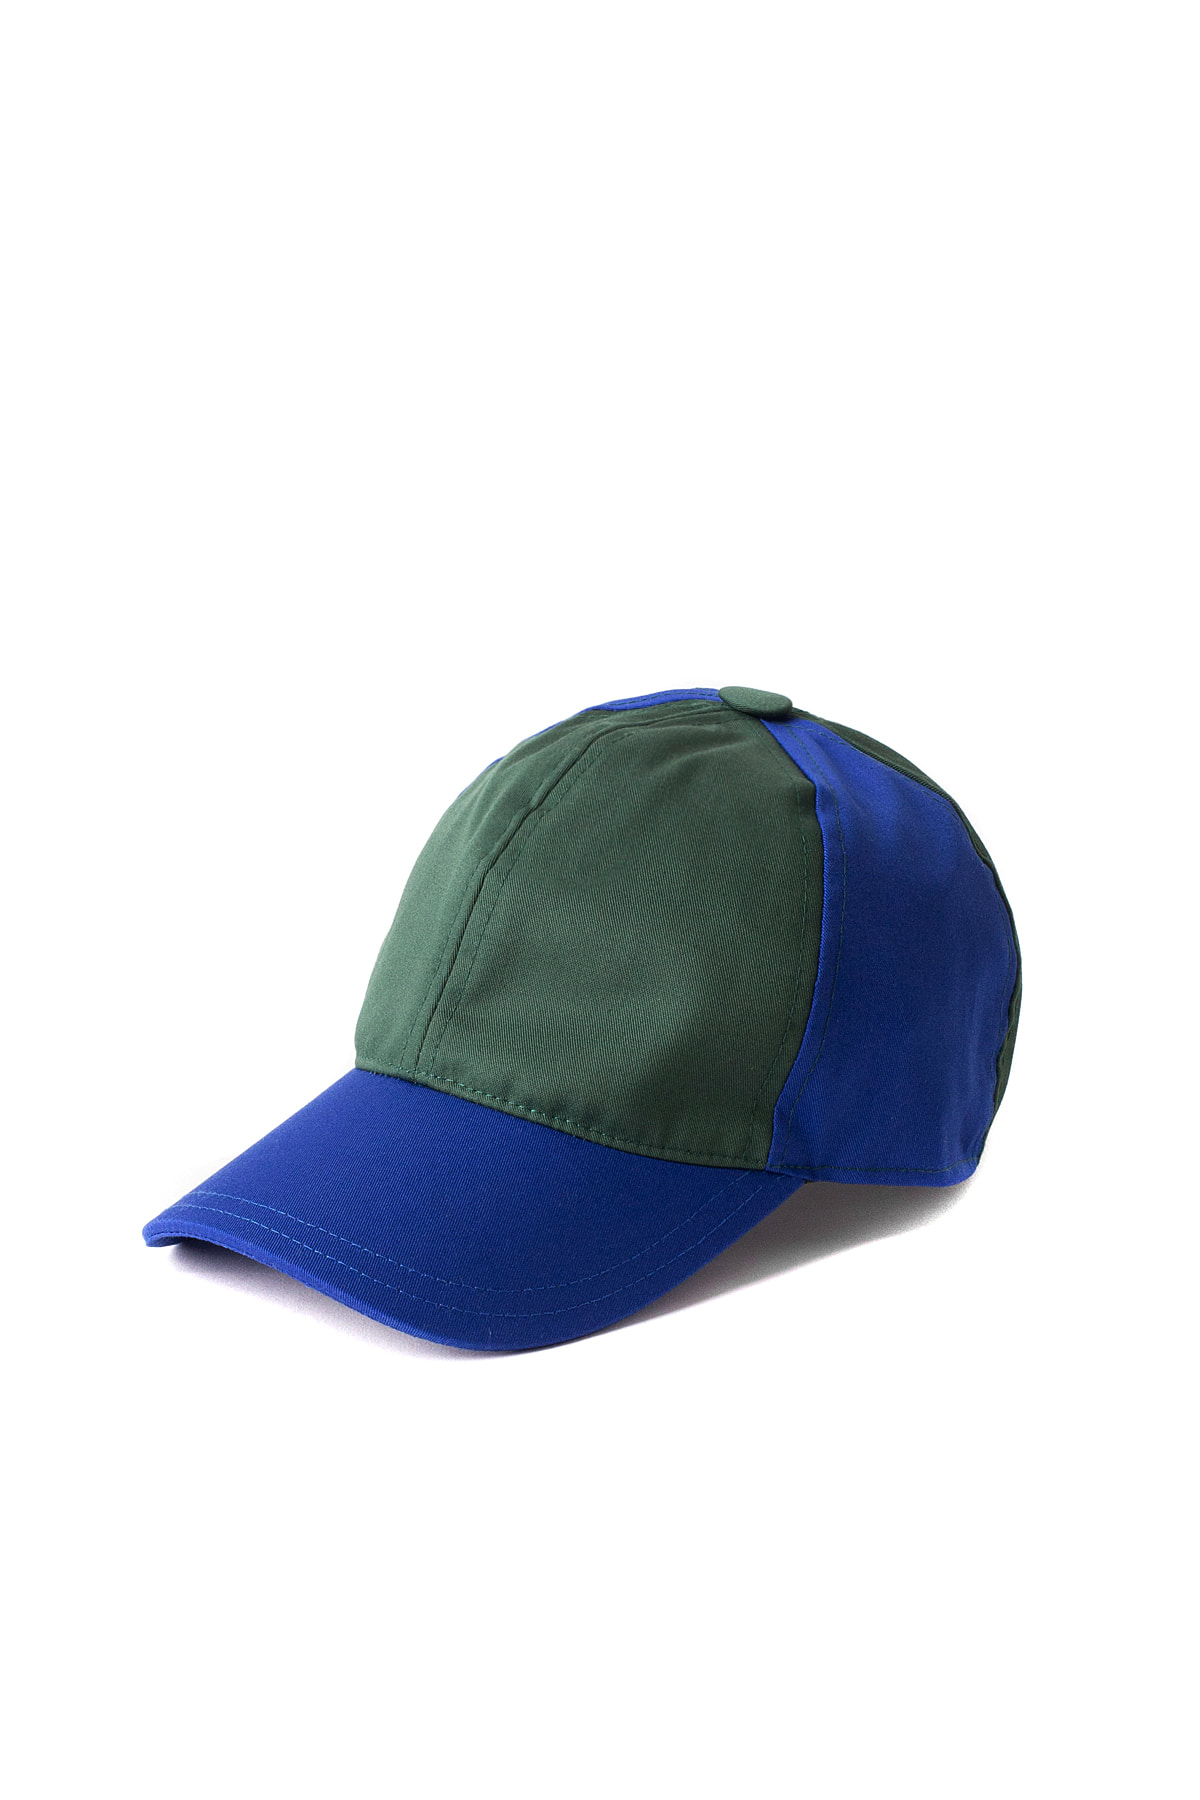 SUNNEI : Baseball Cap (Green / Navy)